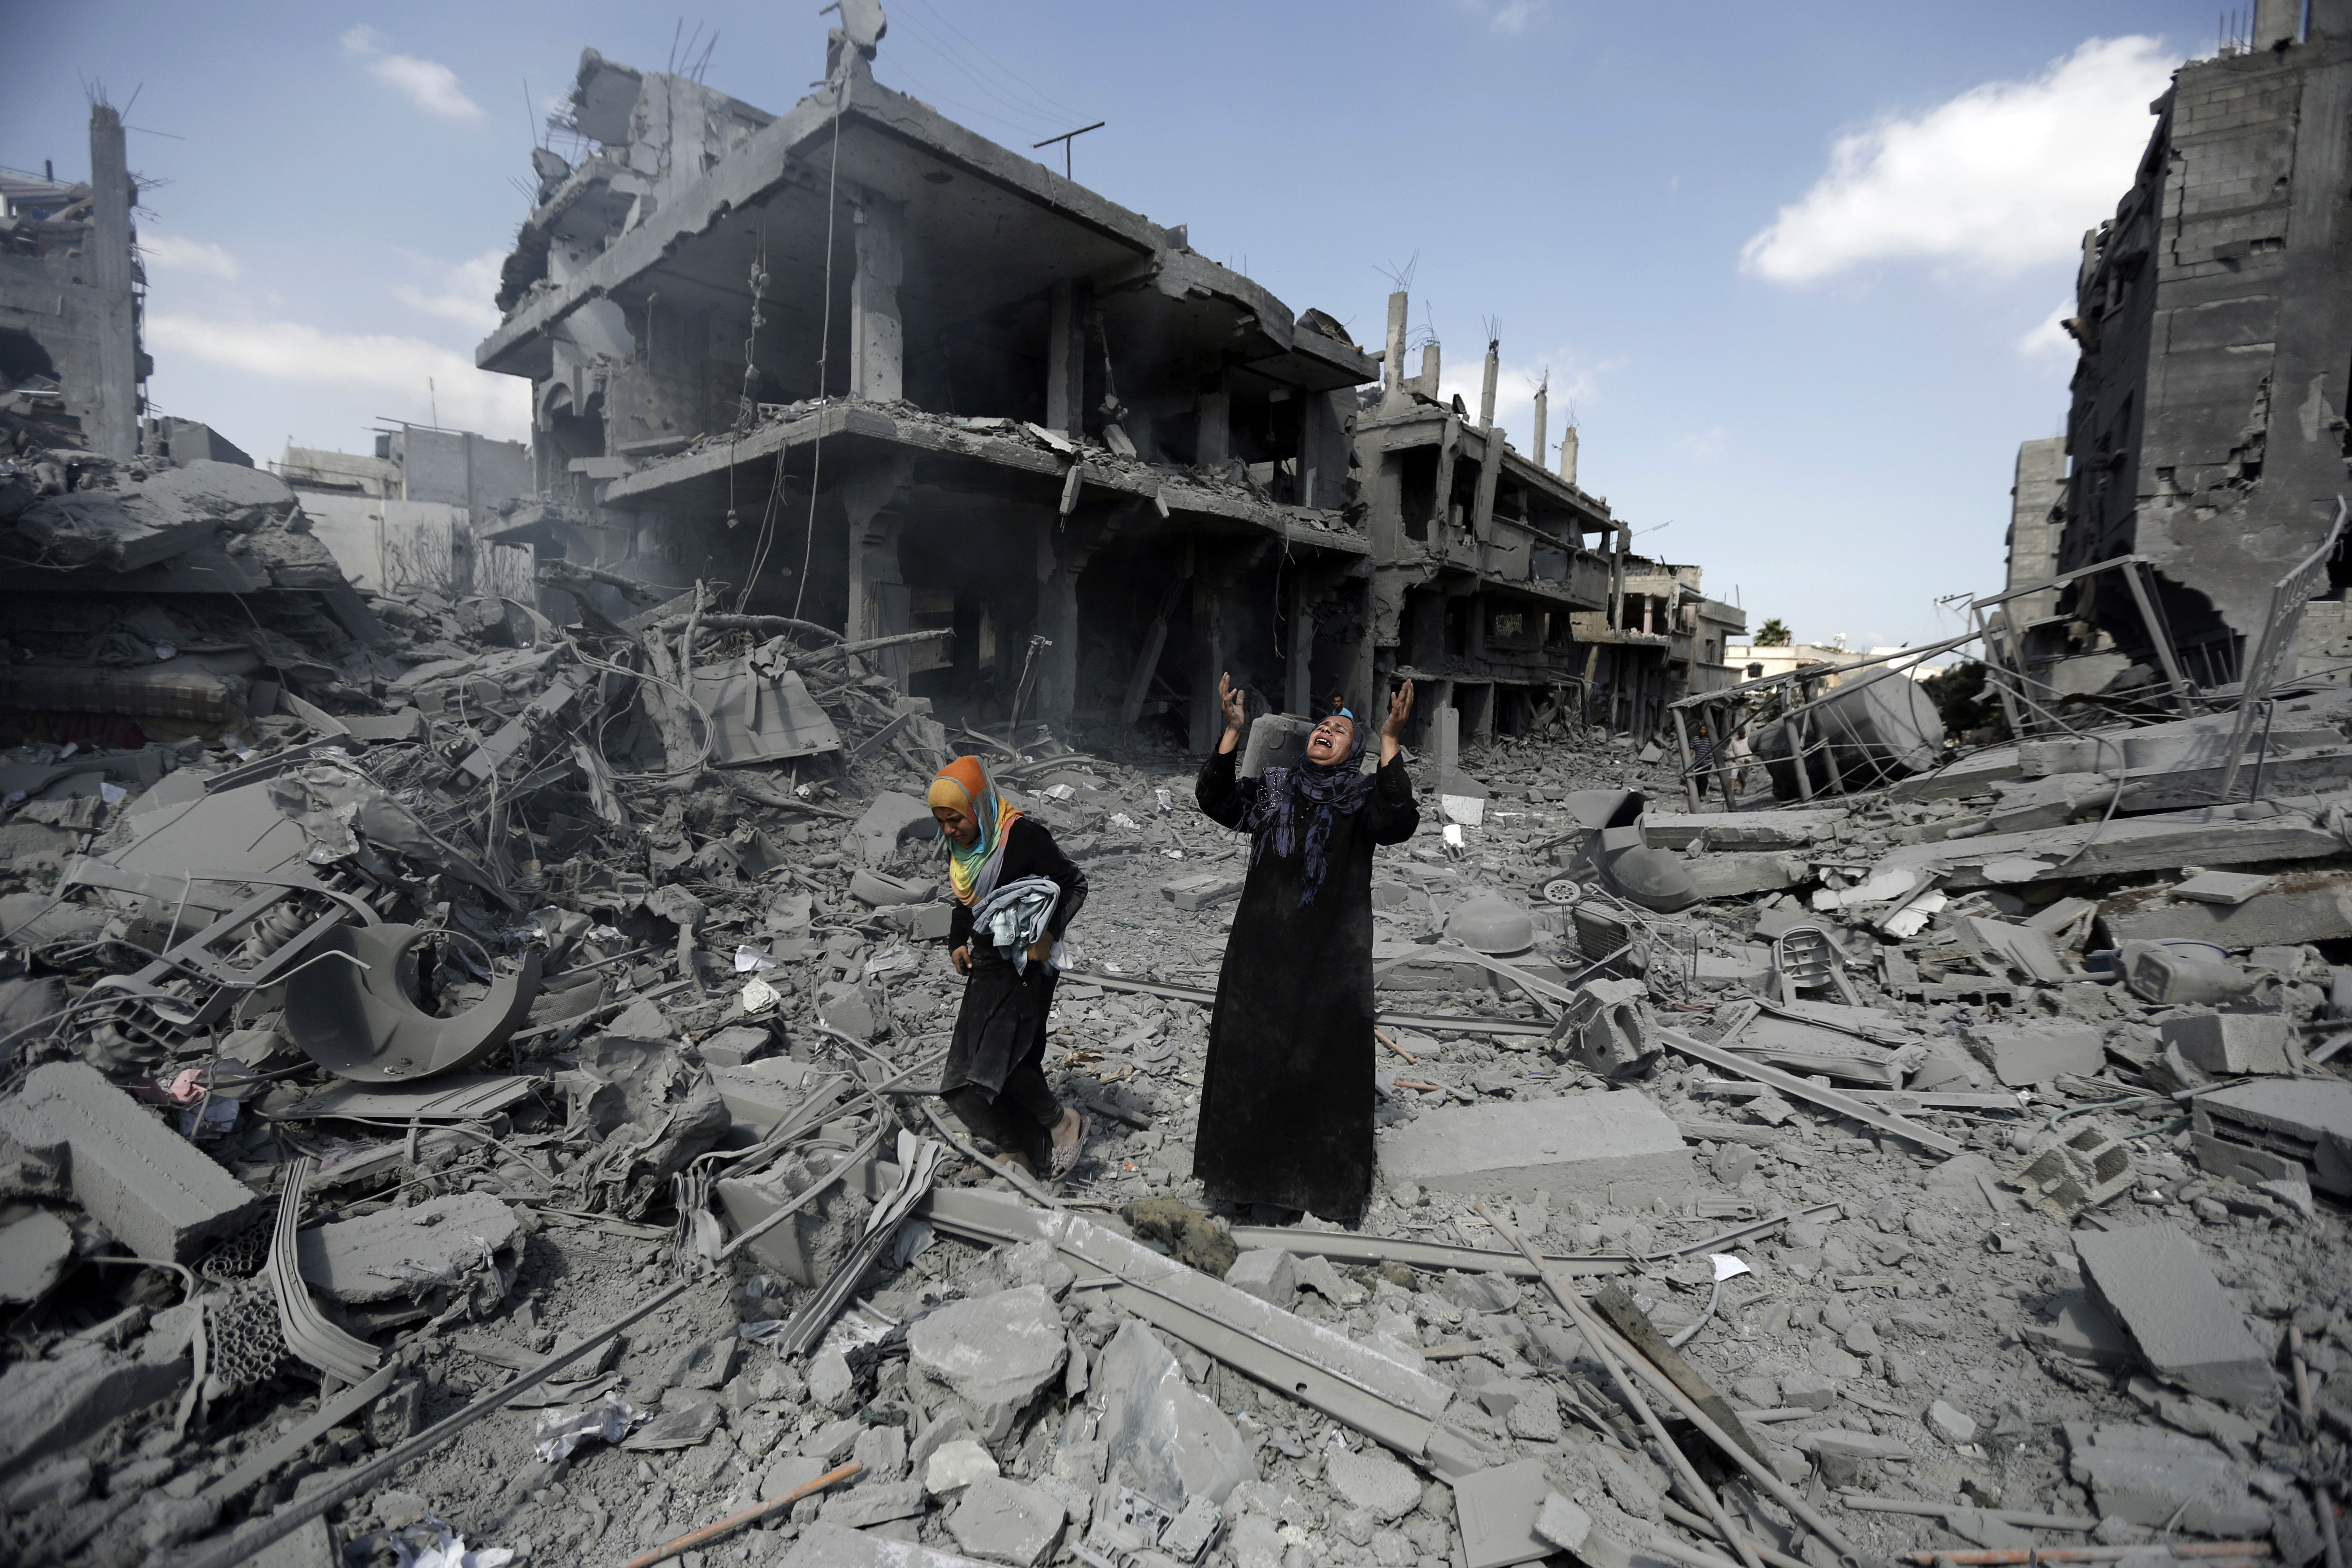 A Palestinian woman pauses amid destroyed buildings in the northern district of Beit Hanun in the Gaza Strip during an humanitarian truce on July 26, 2014. The bodies of at least another 35 Palestinians were recovered from rubble across Gaza during a truce, raising to over 900 the overall death toll of Israel's onslaught on the territory since July 8, medics said. AFP PHOTO / MOHAMMED ABED        (Photo credit should read MOHAMMED ABED/AFP/Getty Images)